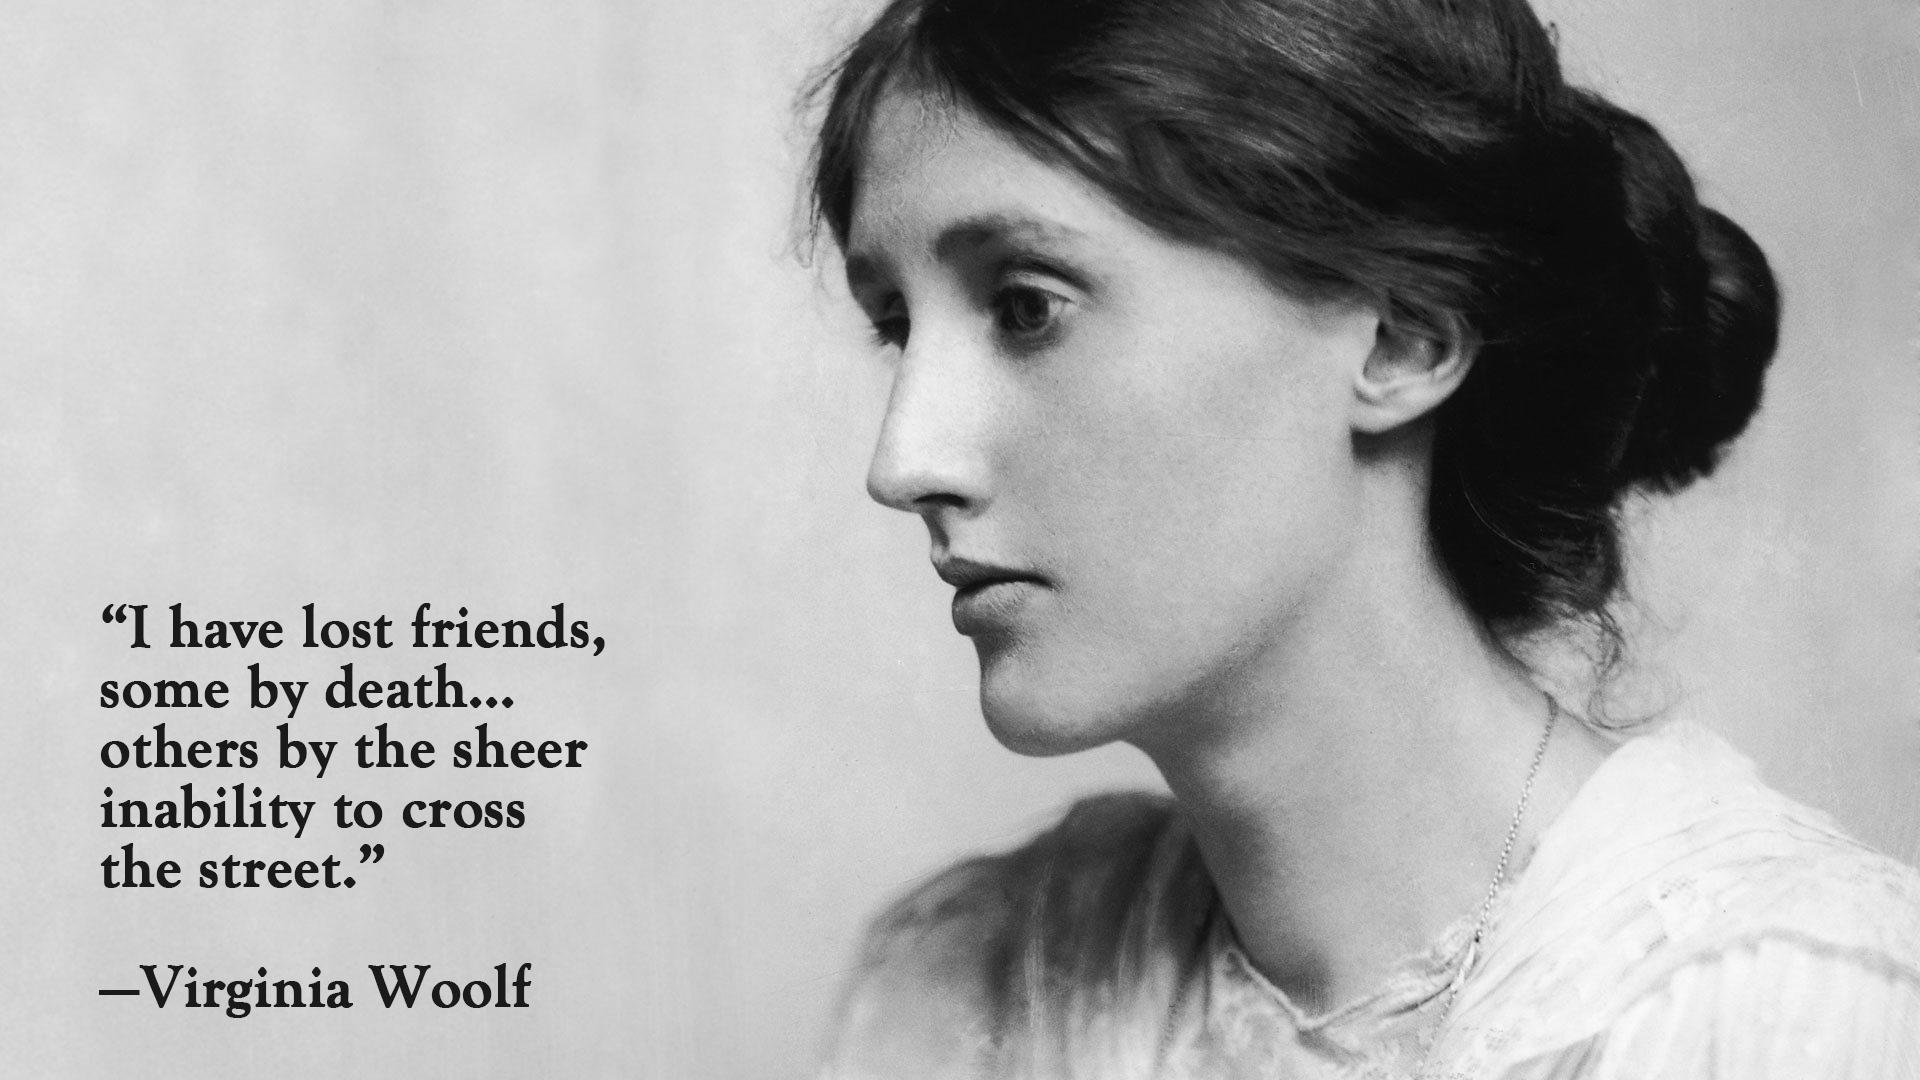 """I have lost friends, some by death…others by the sheer inability to cross the street.""—Virginia Woolf [1920×1080] [OC]"